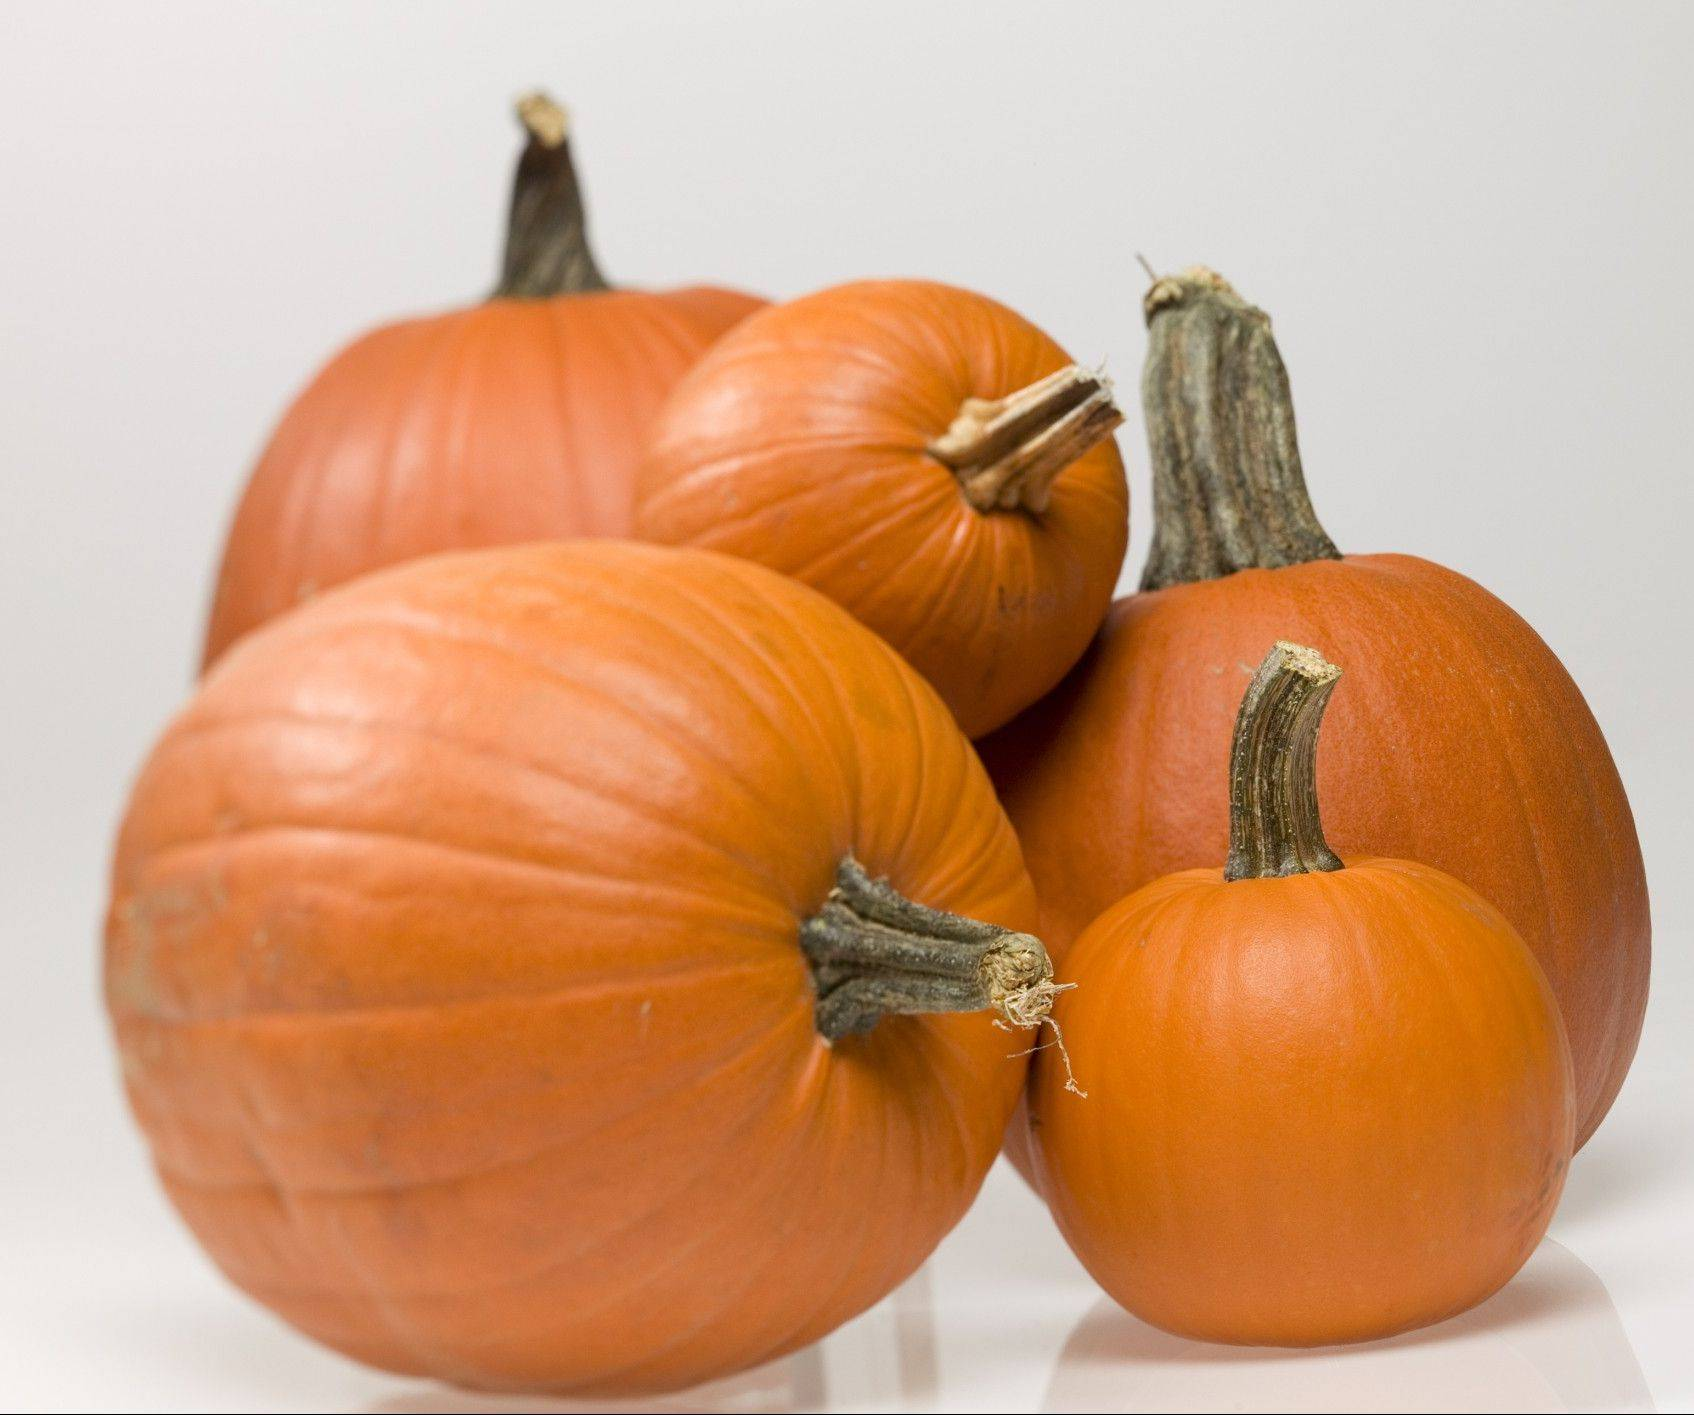 Putting pumpkin in your chili not only tastes good, but it can help your overall health.